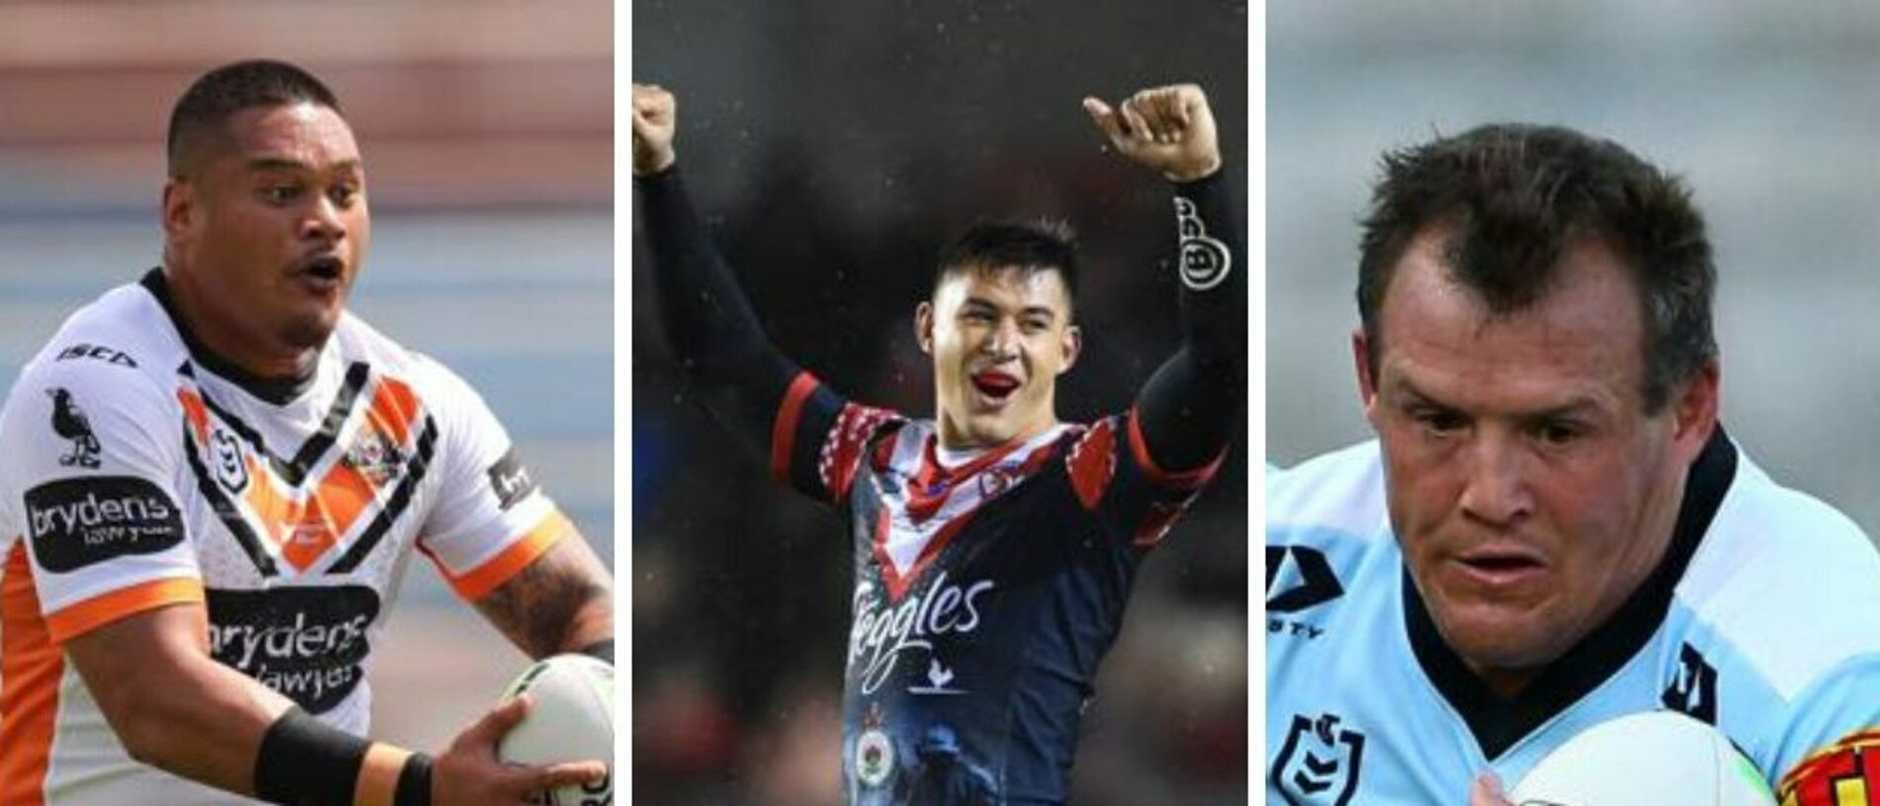 Who will be the Dally M centre of the year in 2020?